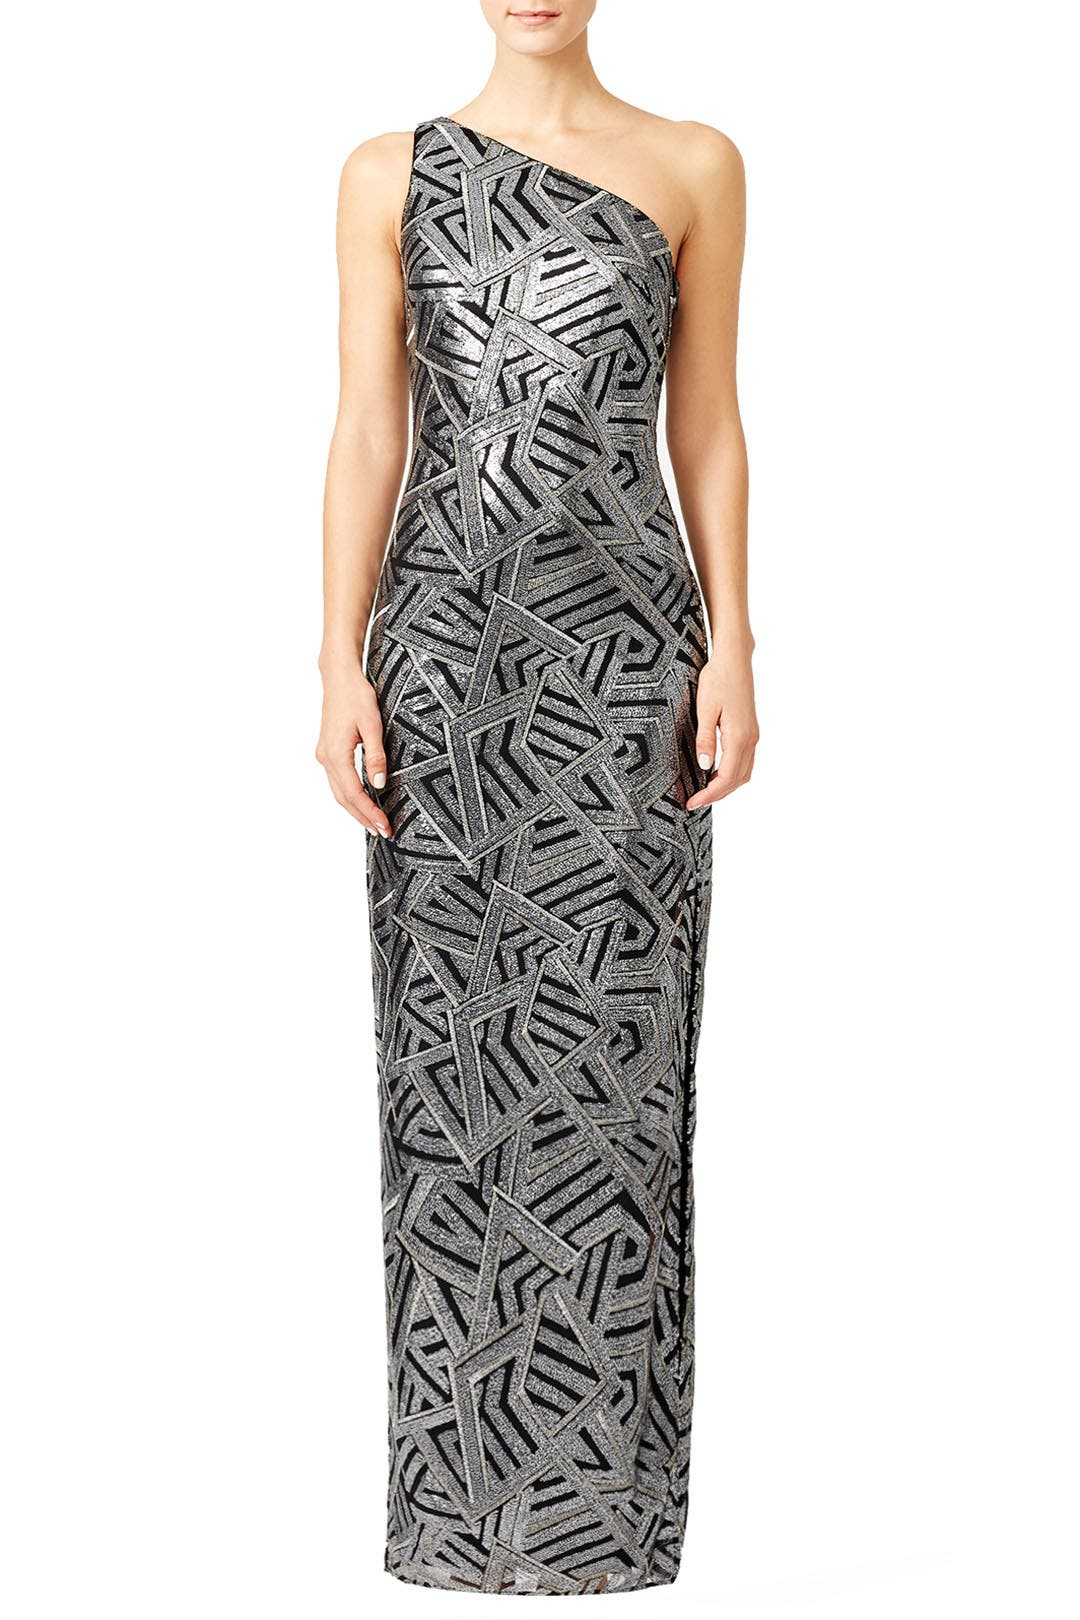 Trio Gown By Laundry By Shelli Segal For 55 Rent The Runway